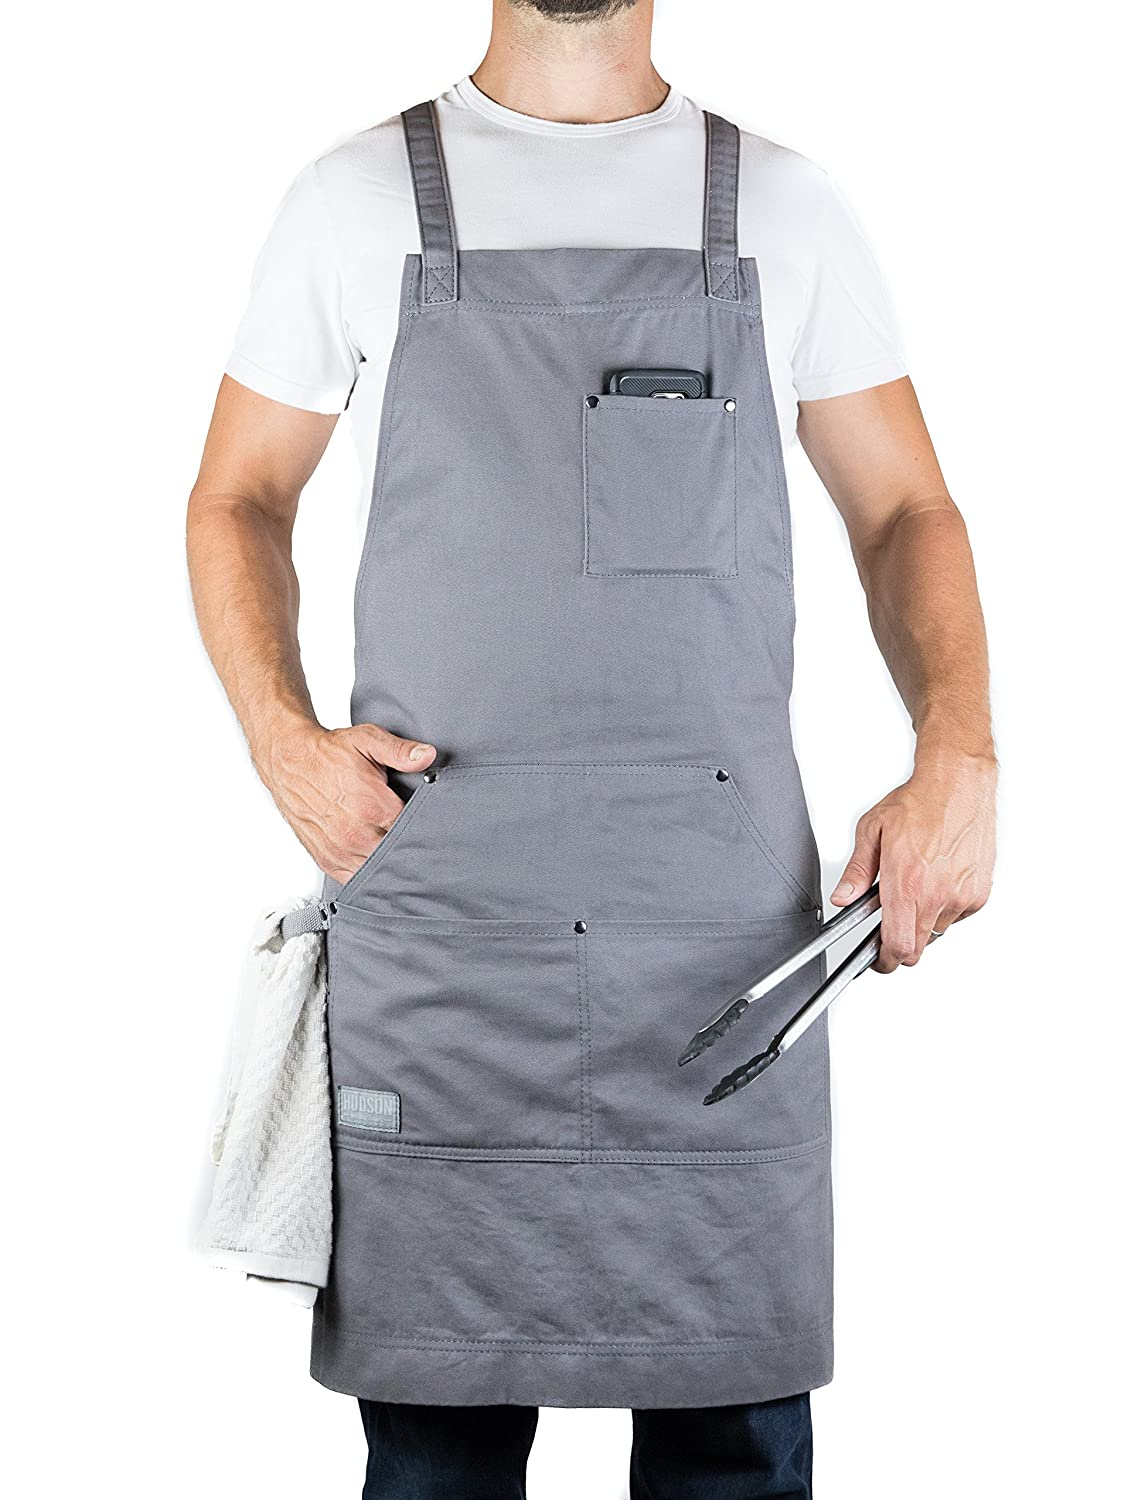 Hudson Durable Goods - Professional Grade Chef Apron for Kitchen, BBQ, and Grill (Grey) with Towel Loop + Tool Pockets + Quick Release Buckle, Adjustable M to XXL